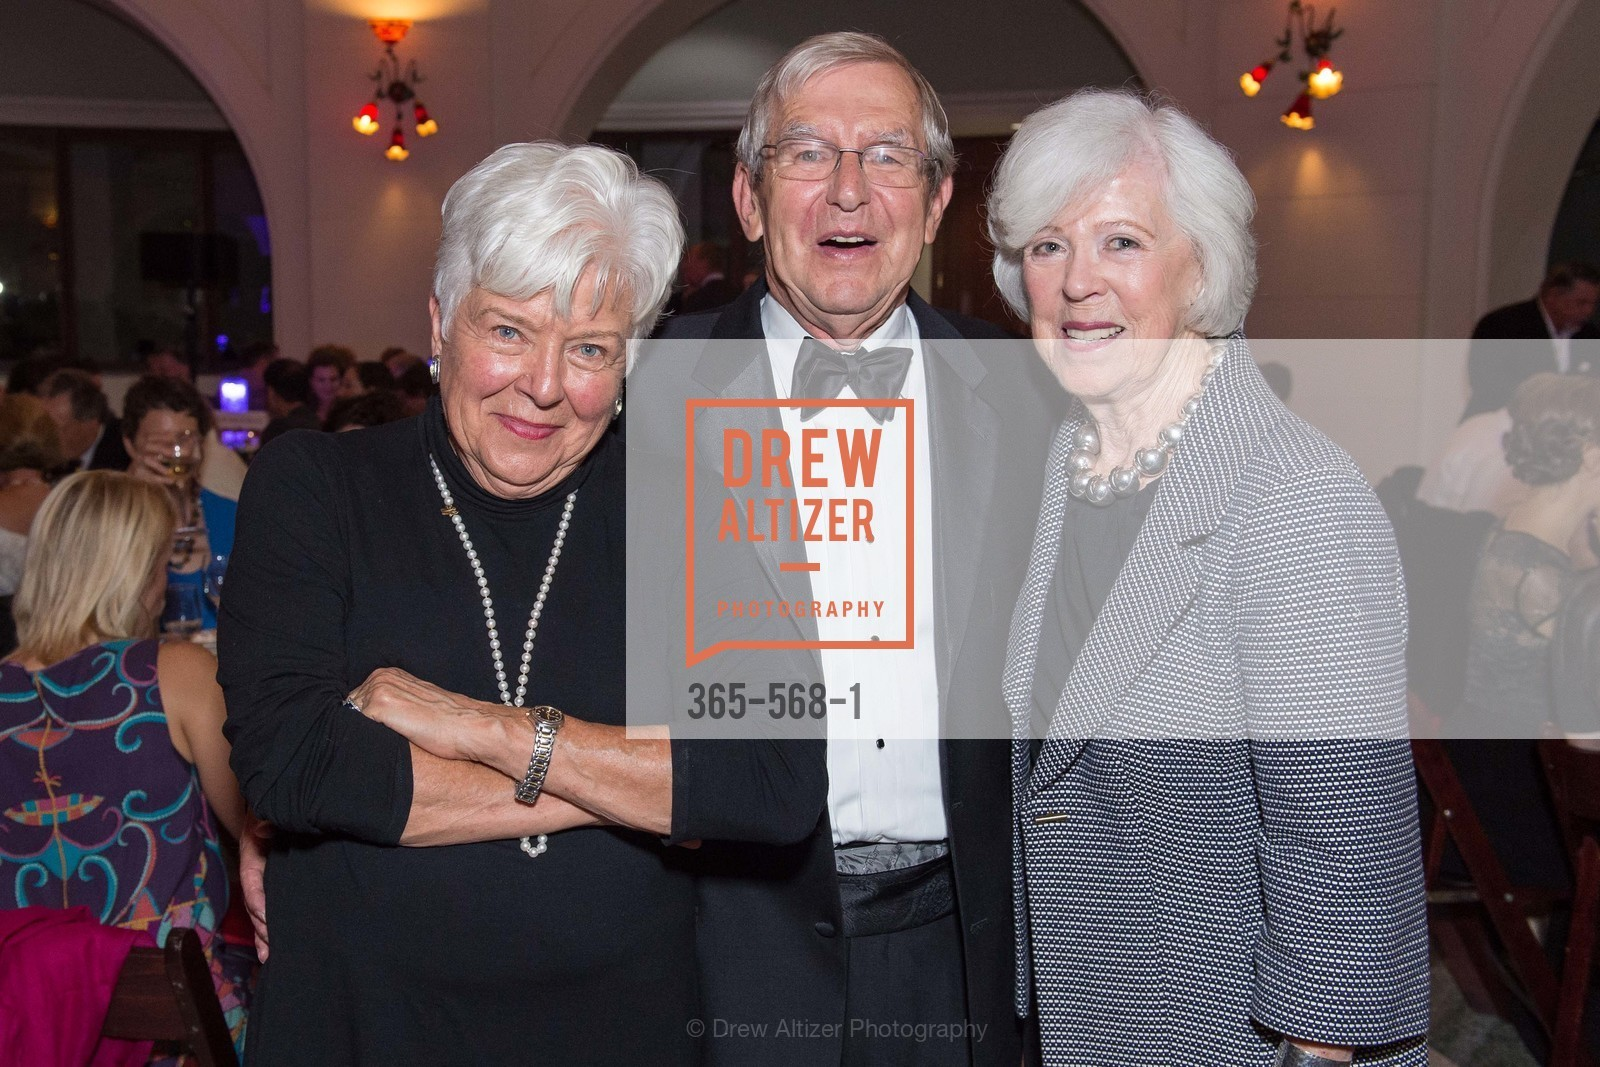 Betty Argabright, Jack Argabright, Lois Dedemenico, SOTHEBY'S  Hosts a Private Viewing of Highlights from the Collection of MRS. PAUL MELLON, US, September 17th, 2014,Drew Altizer, Drew Altizer Photography, full-service agency, private events, San Francisco photographer, photographer california